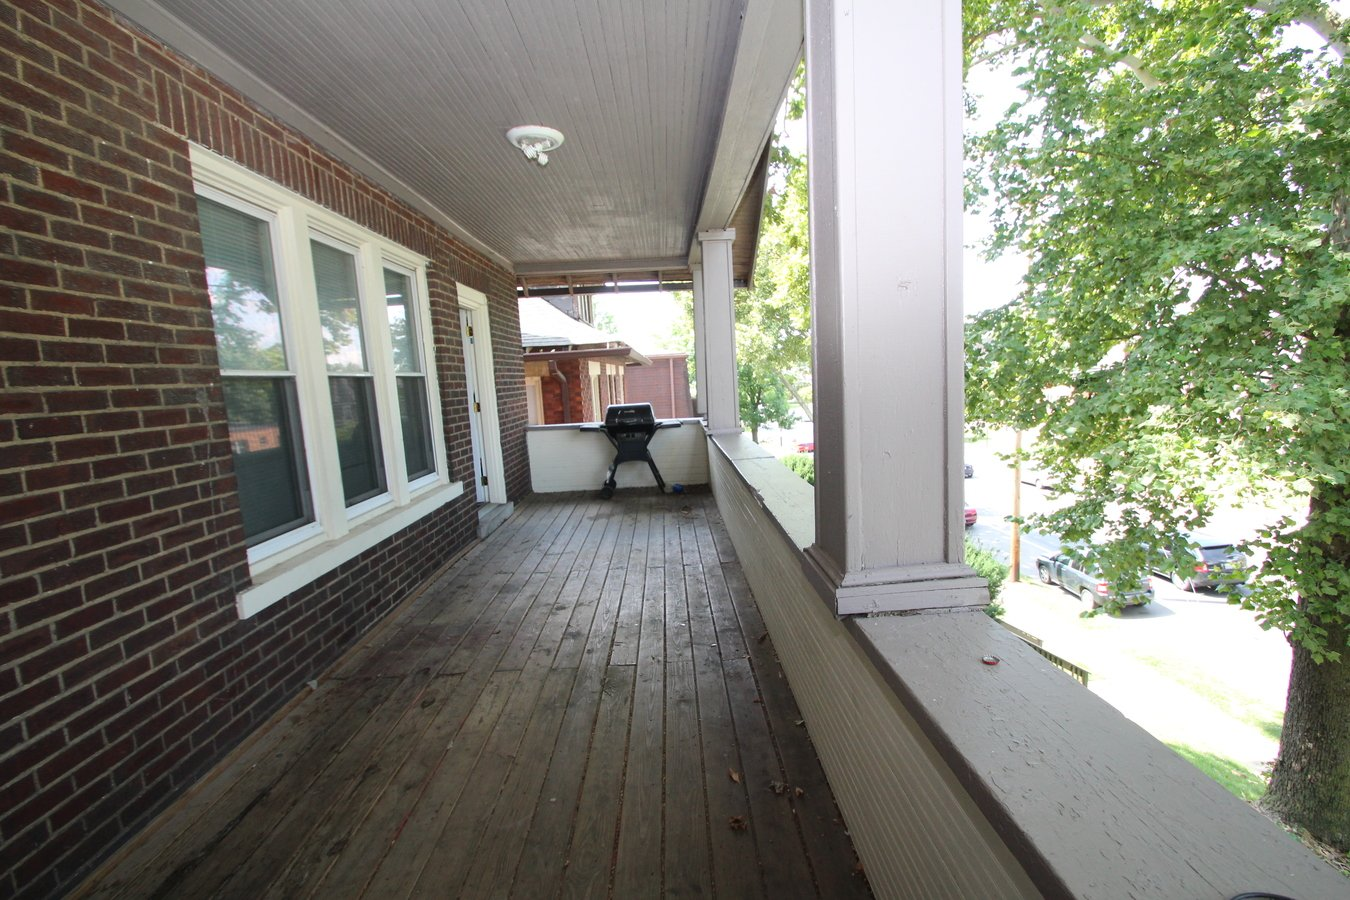 2 Bedrooms 2 Bathrooms Apartment for rent at 267-269 E. 15th in Columbus, OH